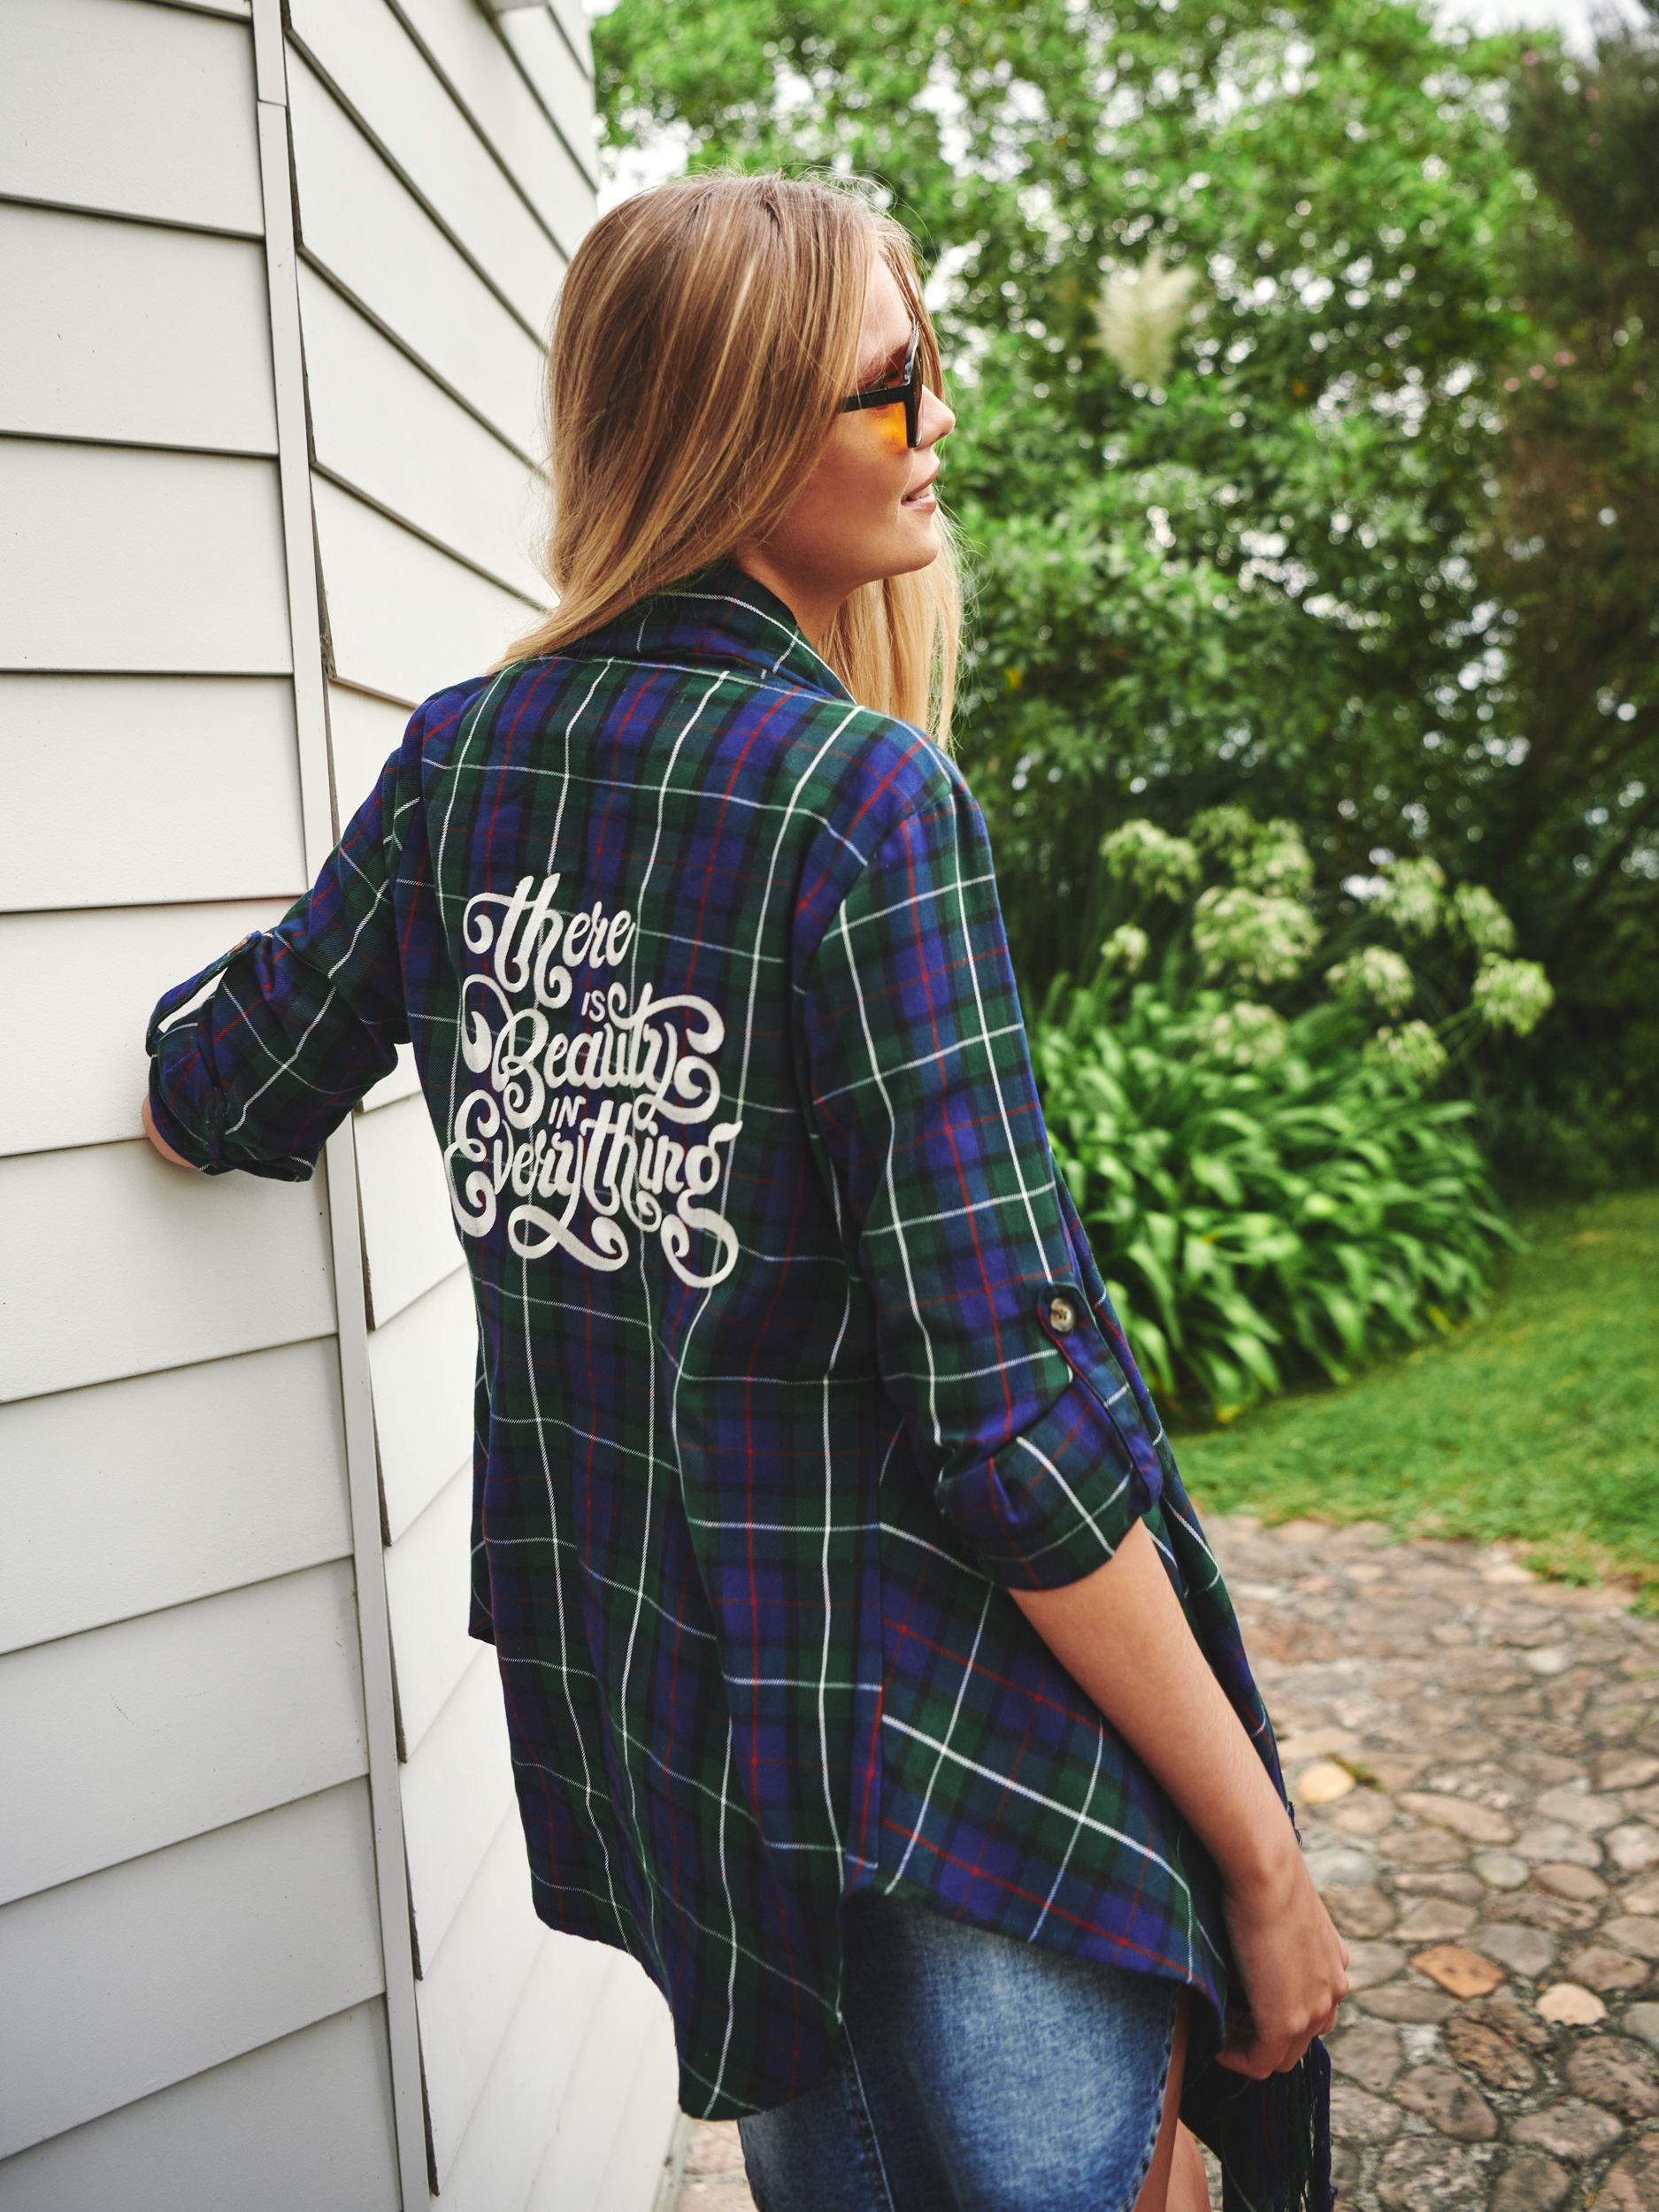 BEAUTY IN EVERYTHING SHIRT